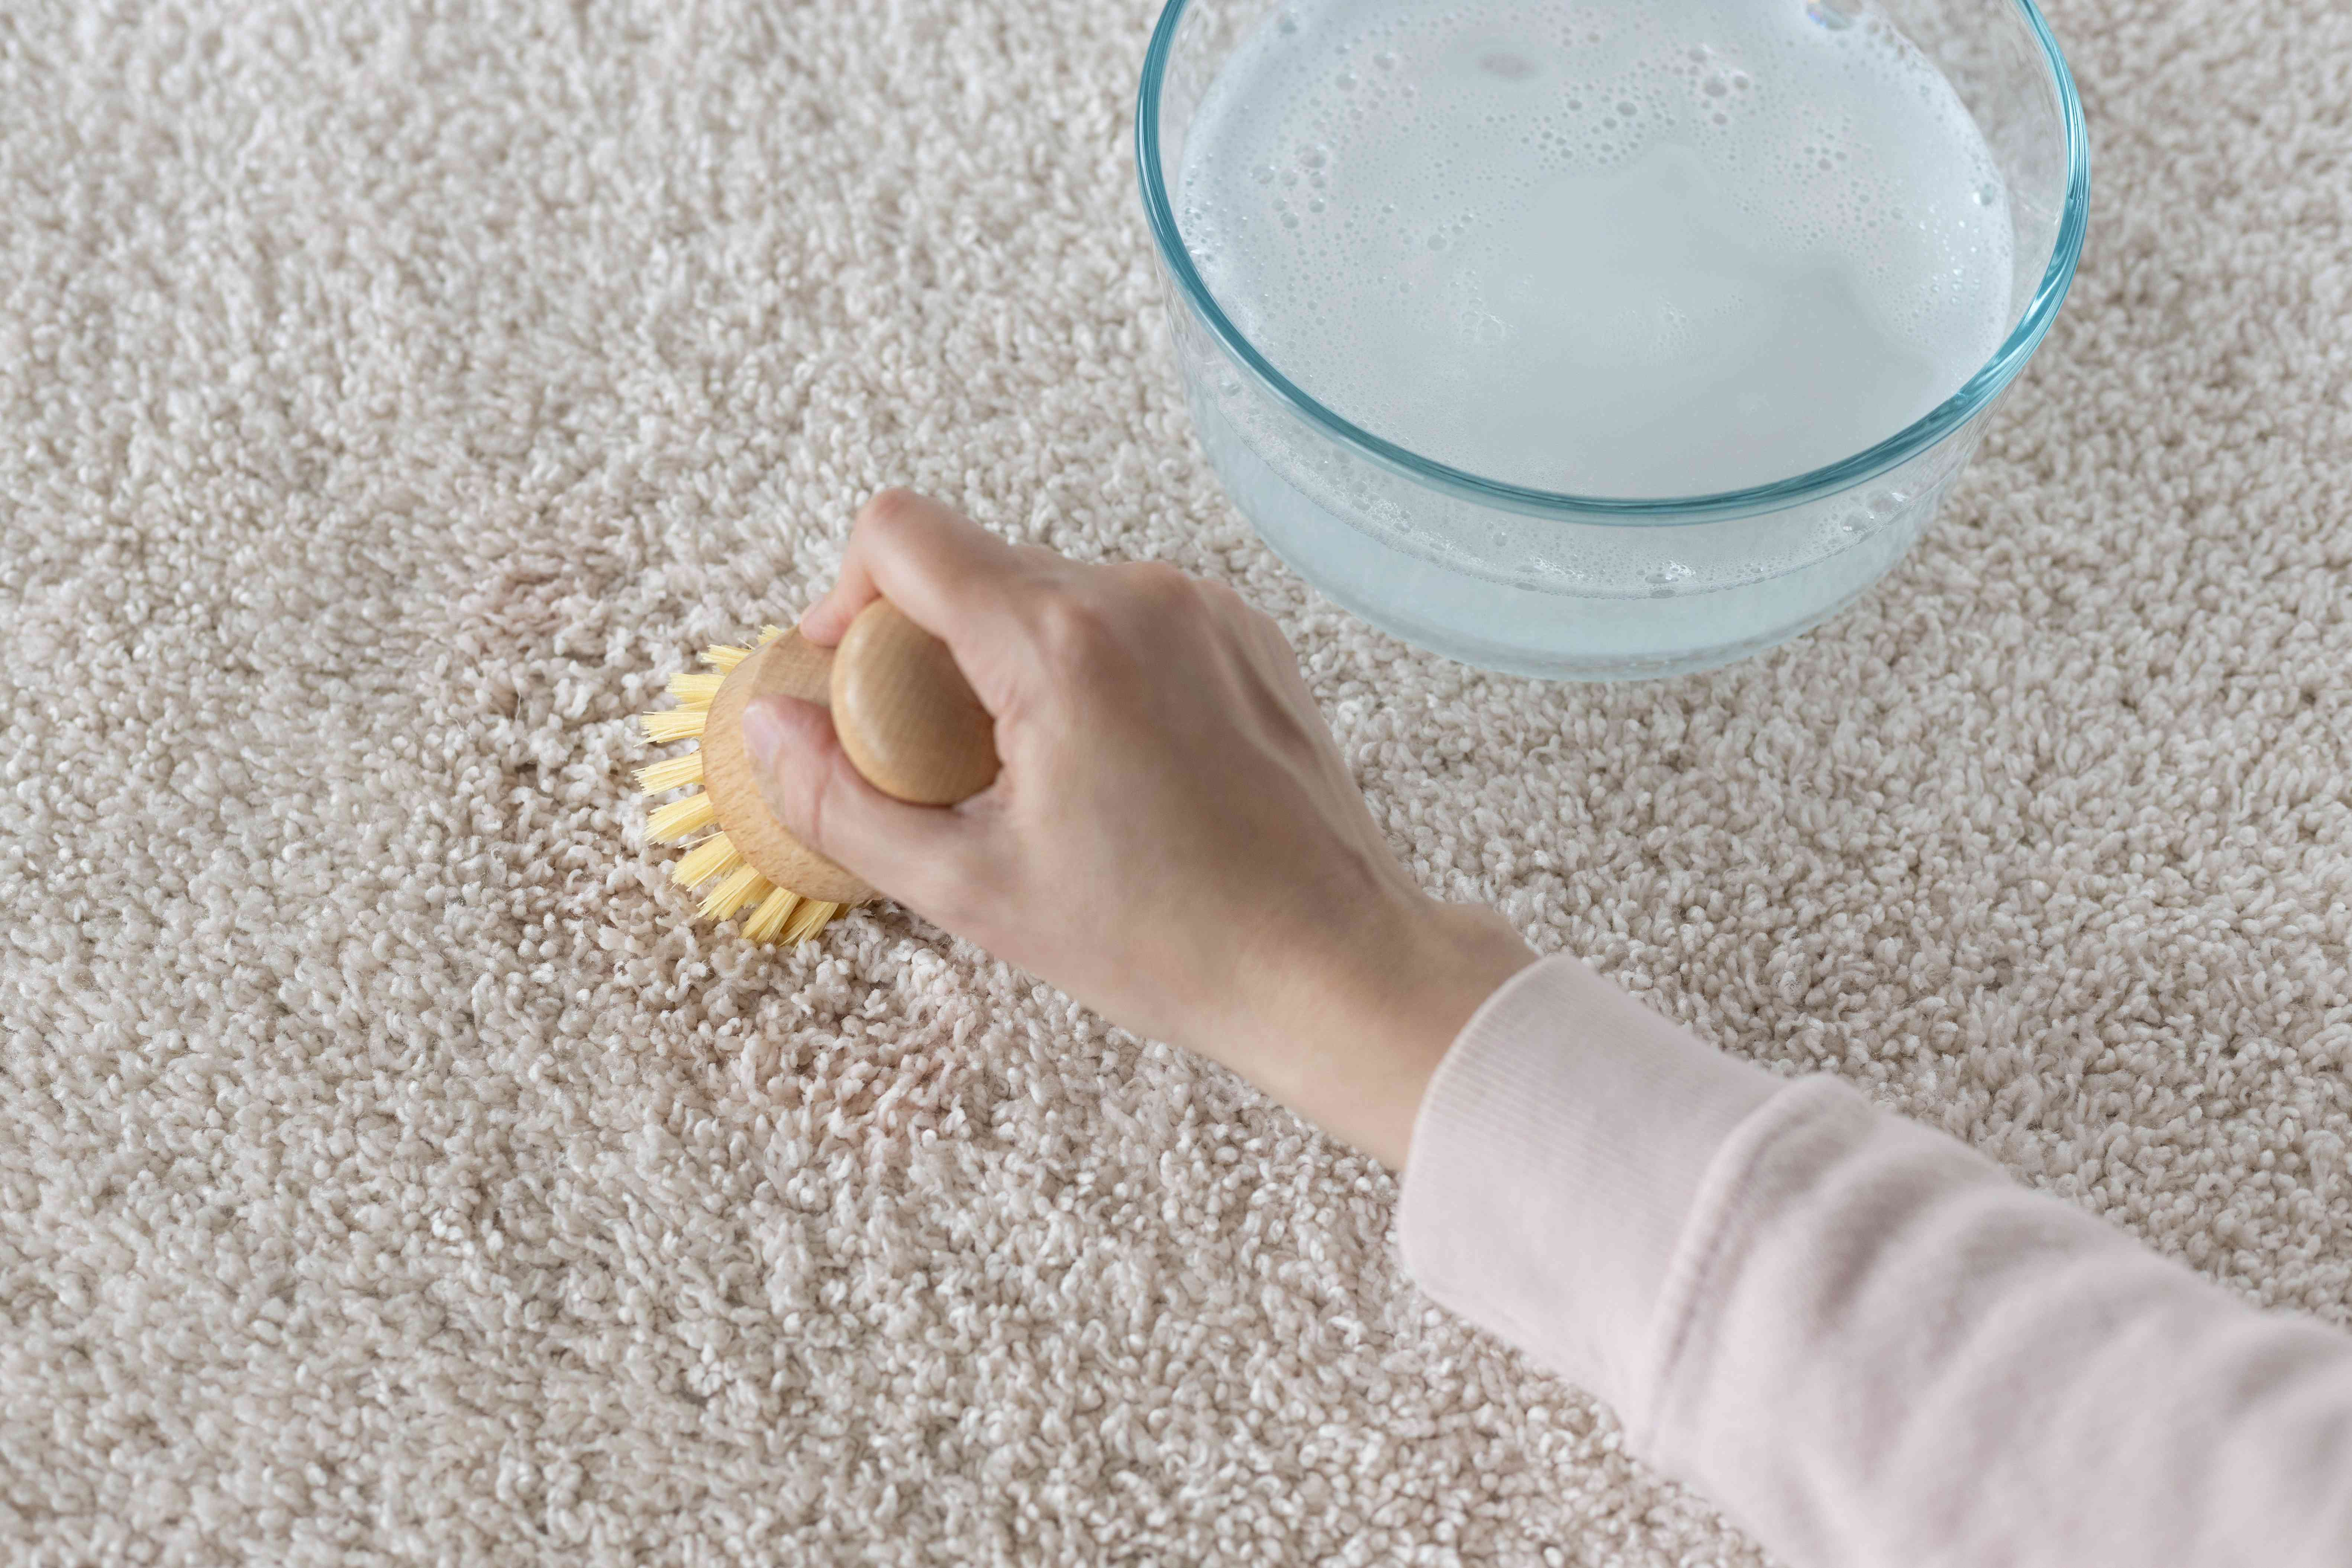 Soft-bristled brush scrubbing fruit punch stain with oxygen-based bleach and water solution on carpet